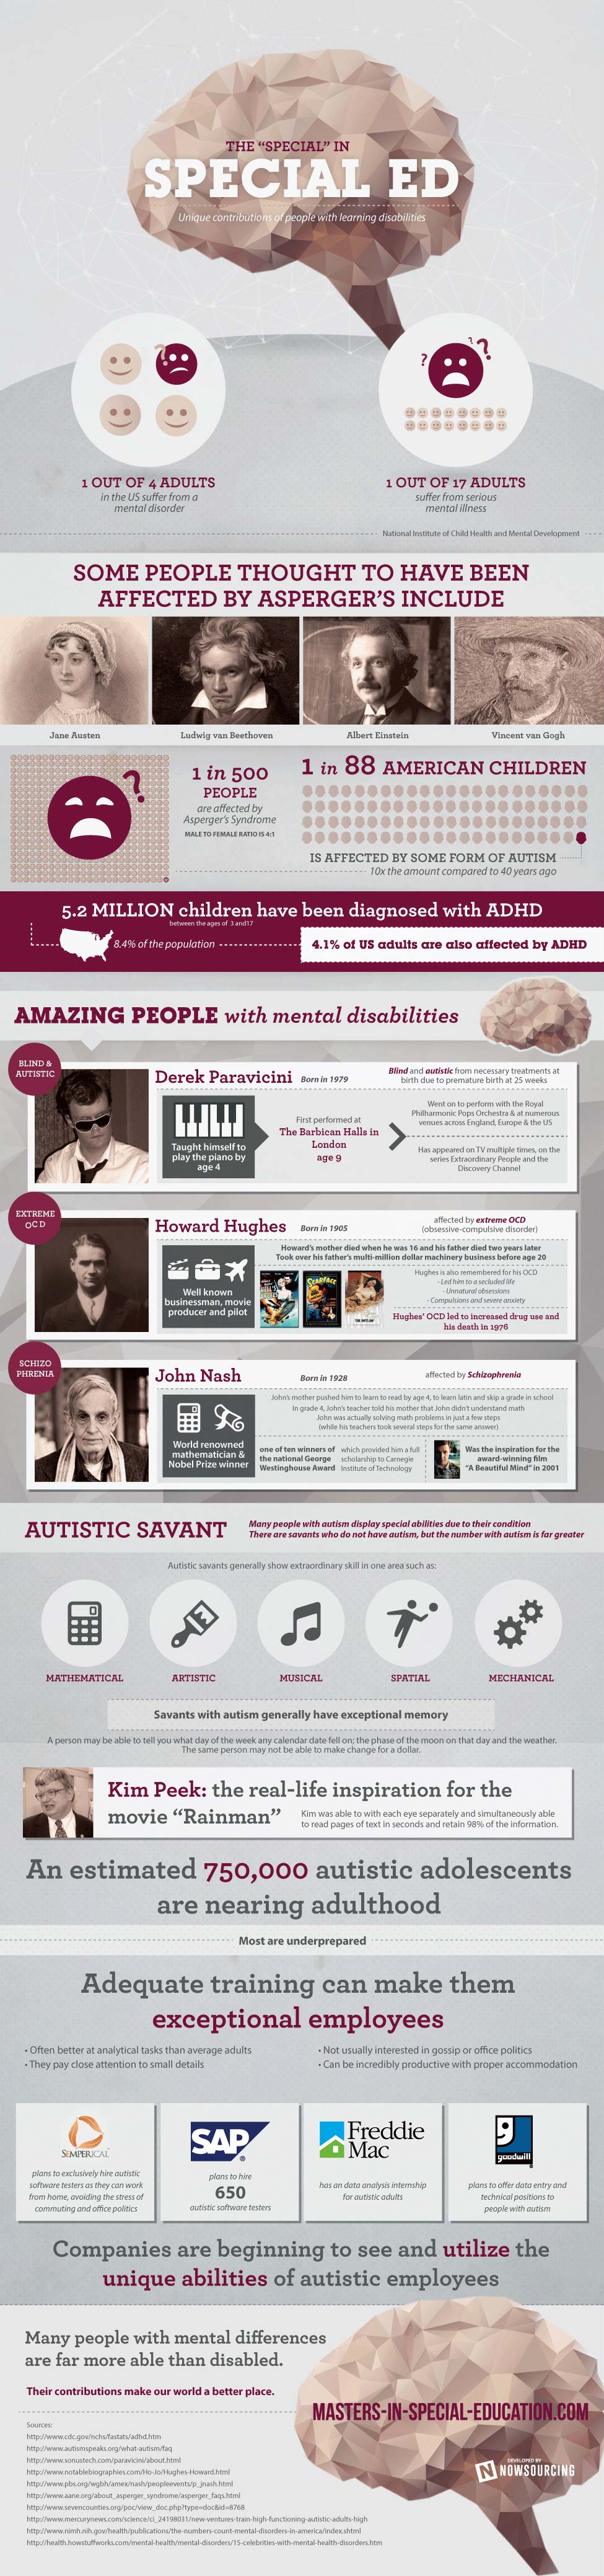 Endowed People with Learning Disabilites-Infographic